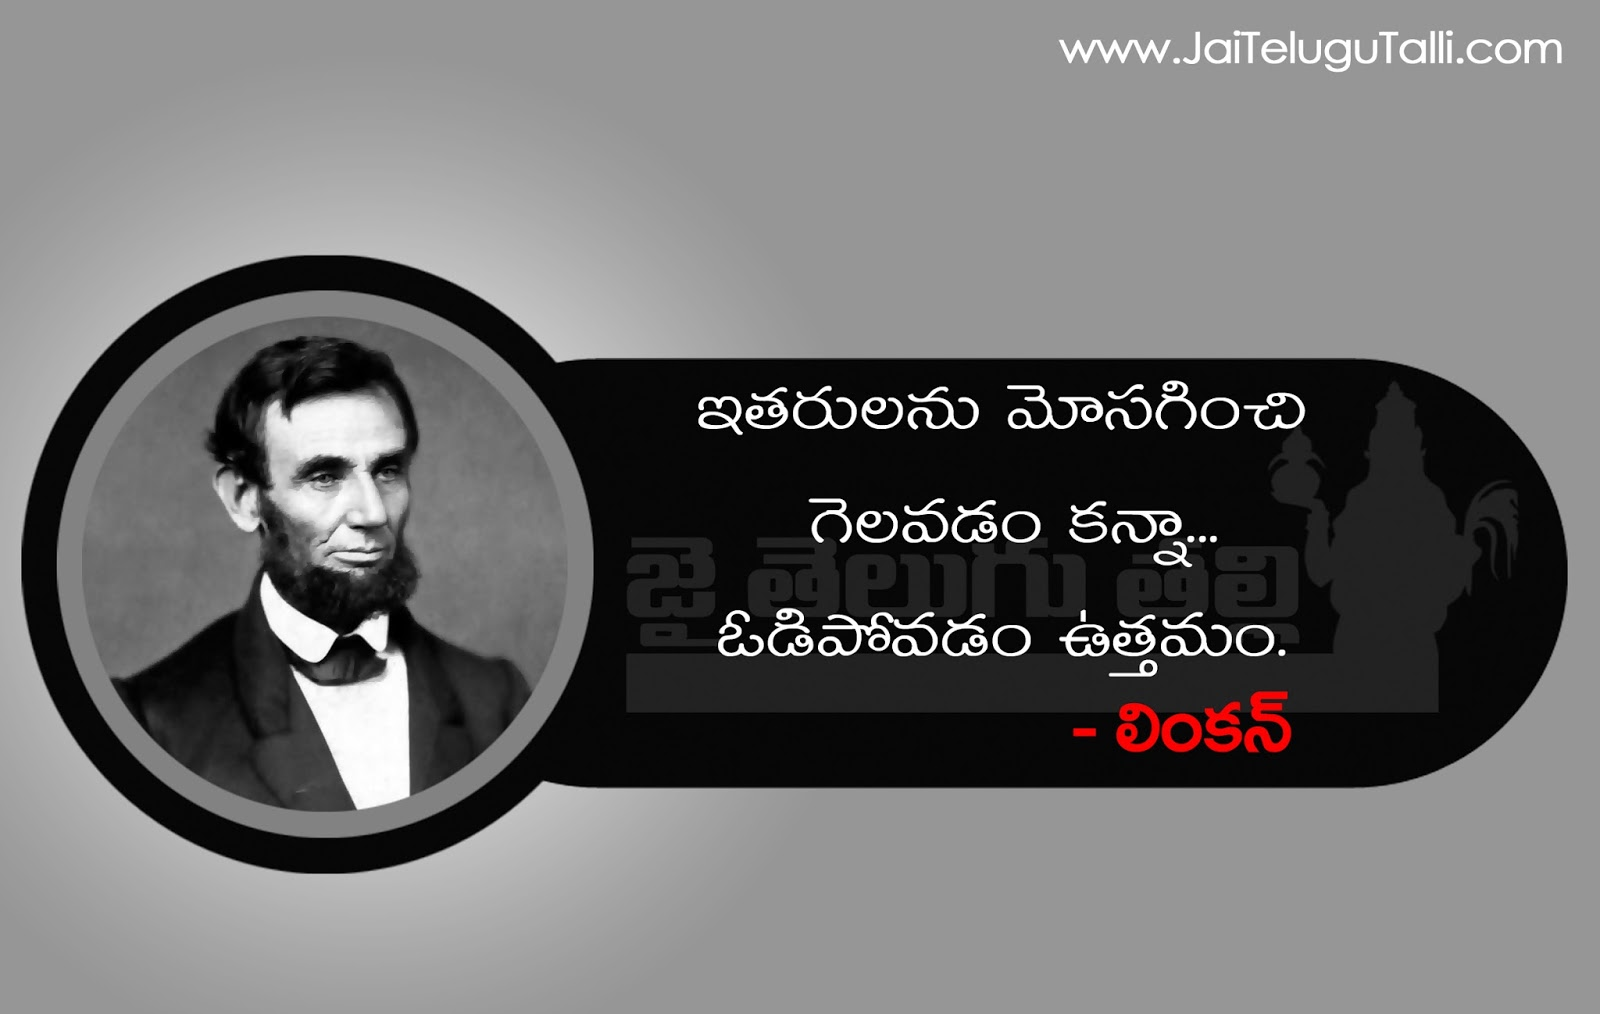 Abe Lincoln Quotes On Life Abraham Lincoln Telugu Quotes And Images Best Inspiring Quotations